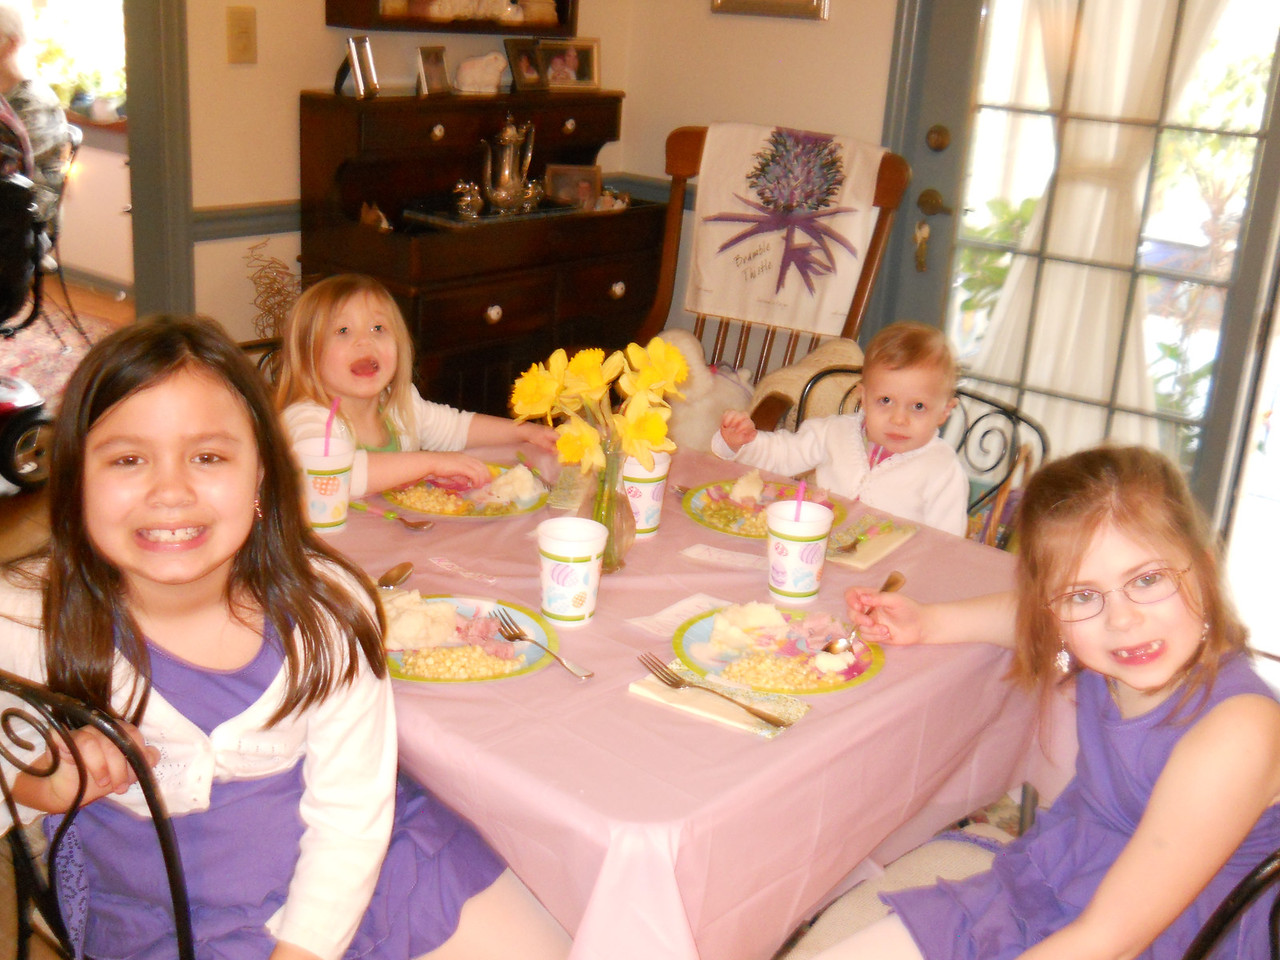 The kid table